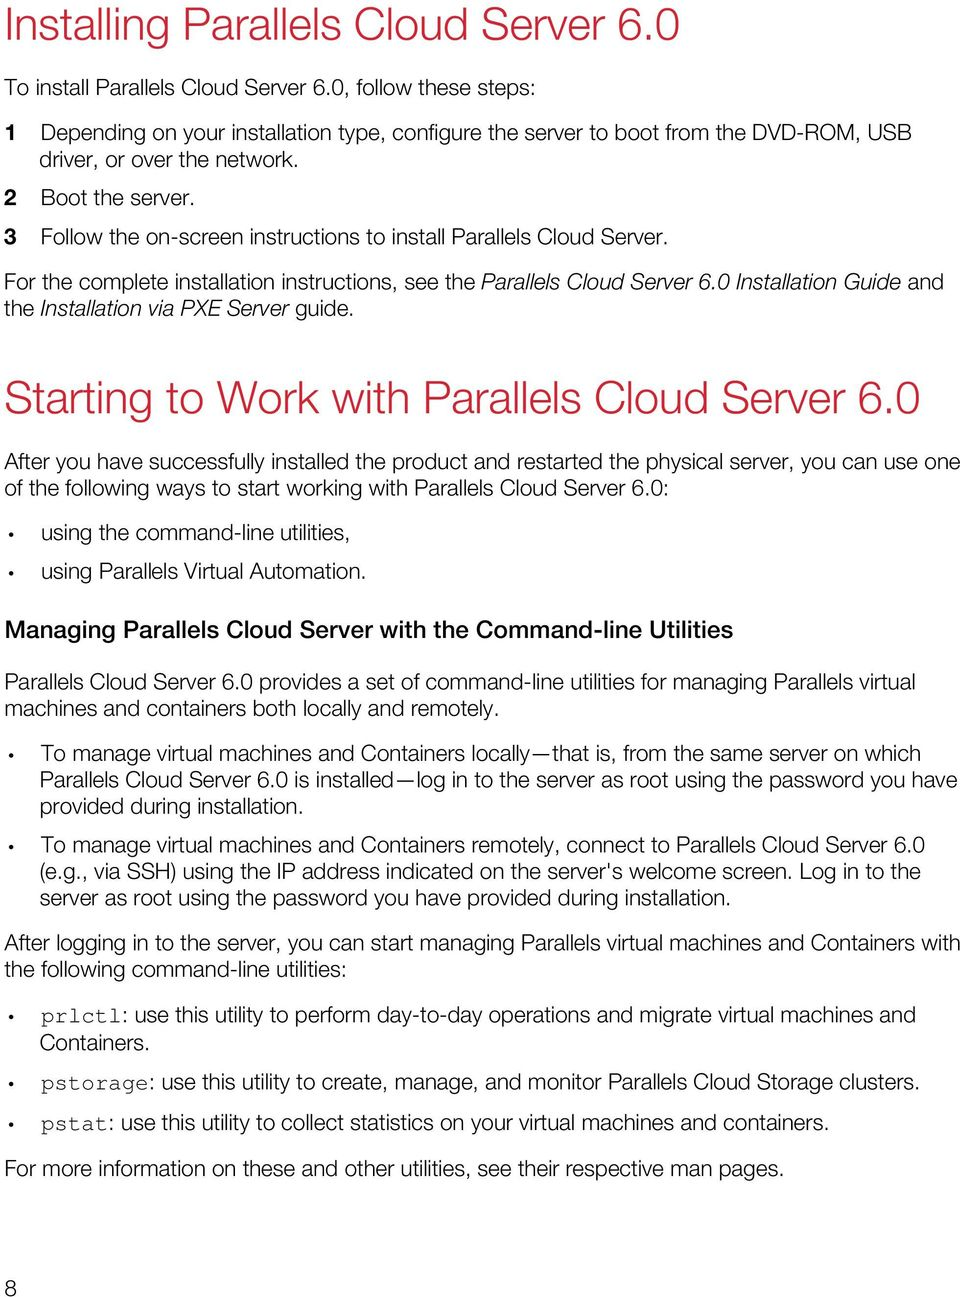 3 Follow the on-screen instructions to install Parallels Cloud Server. For the complete installation instructions, see the Parallels Cloud Server 6.